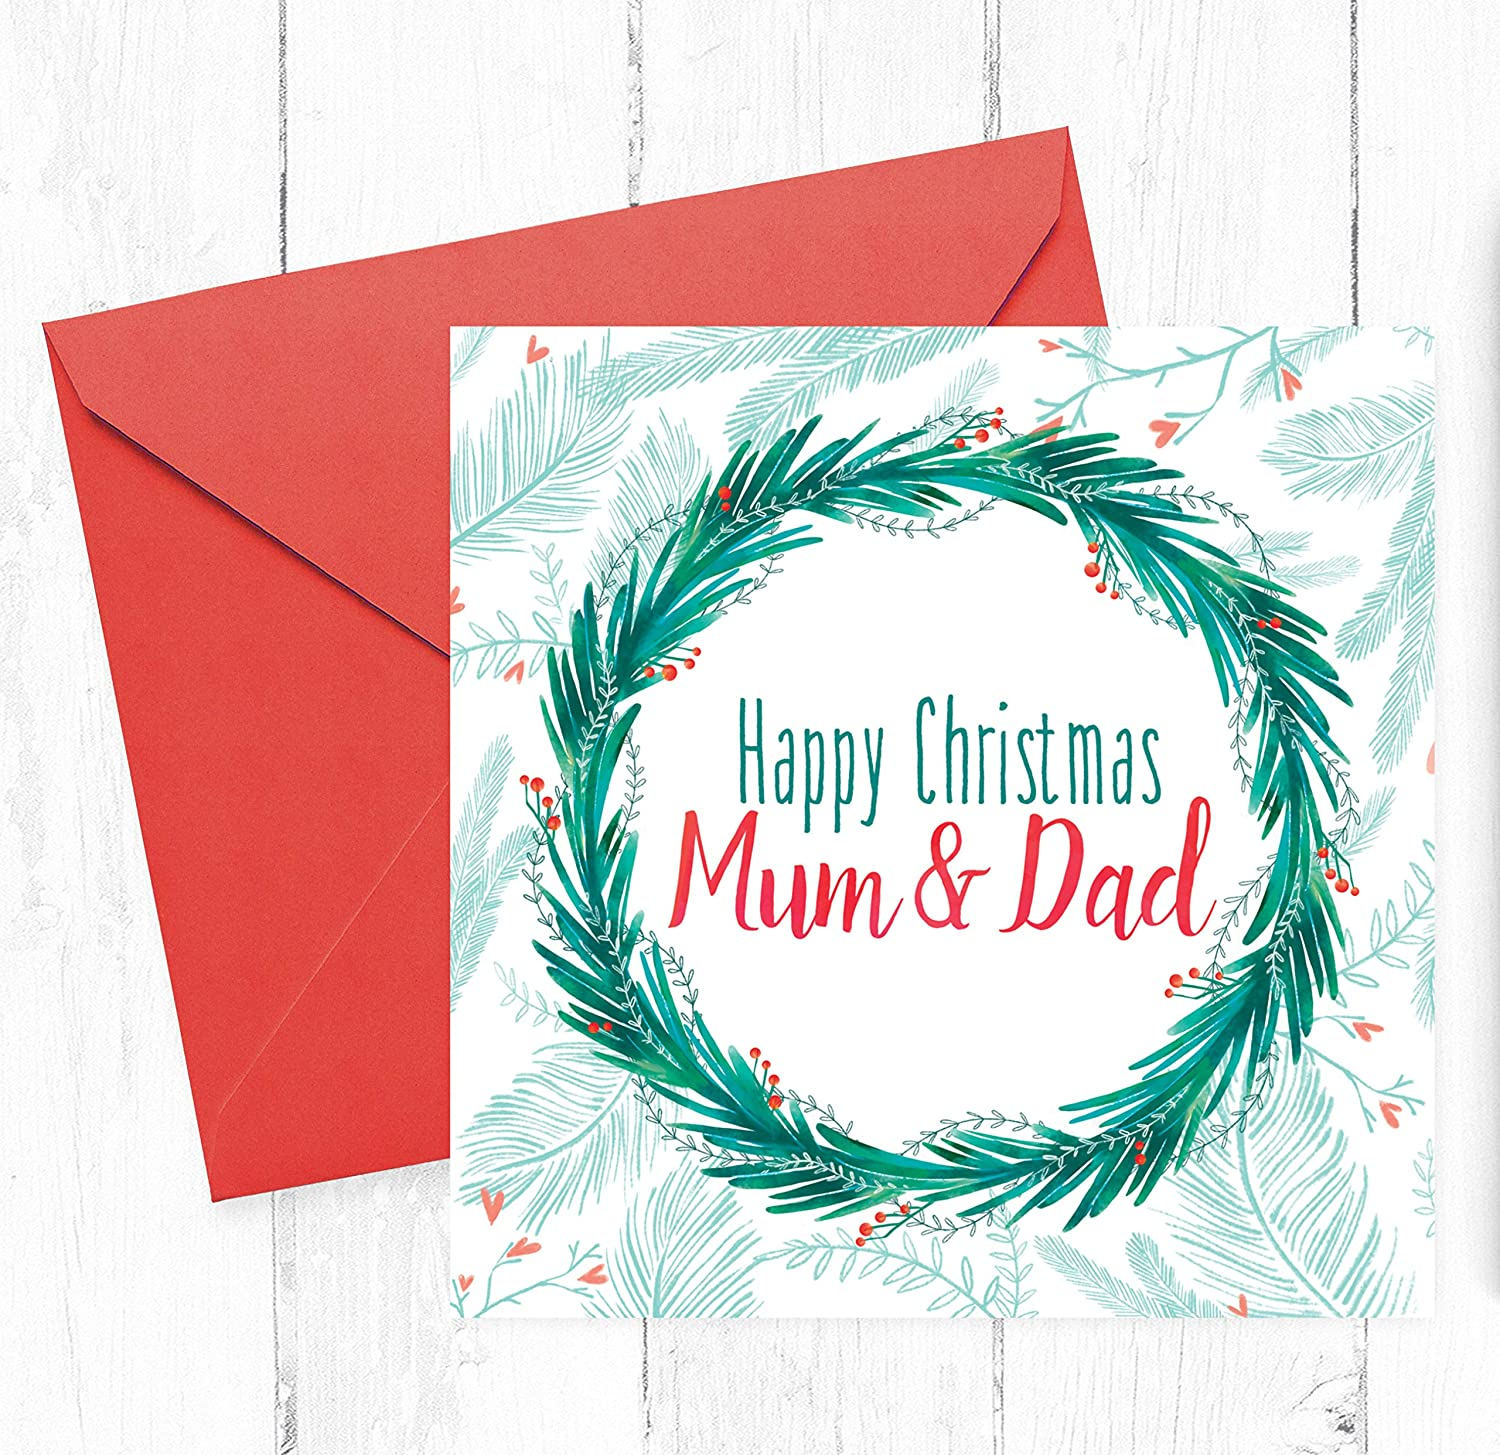 Mum Dad Christmas Card Greetings Cards For Parents Step